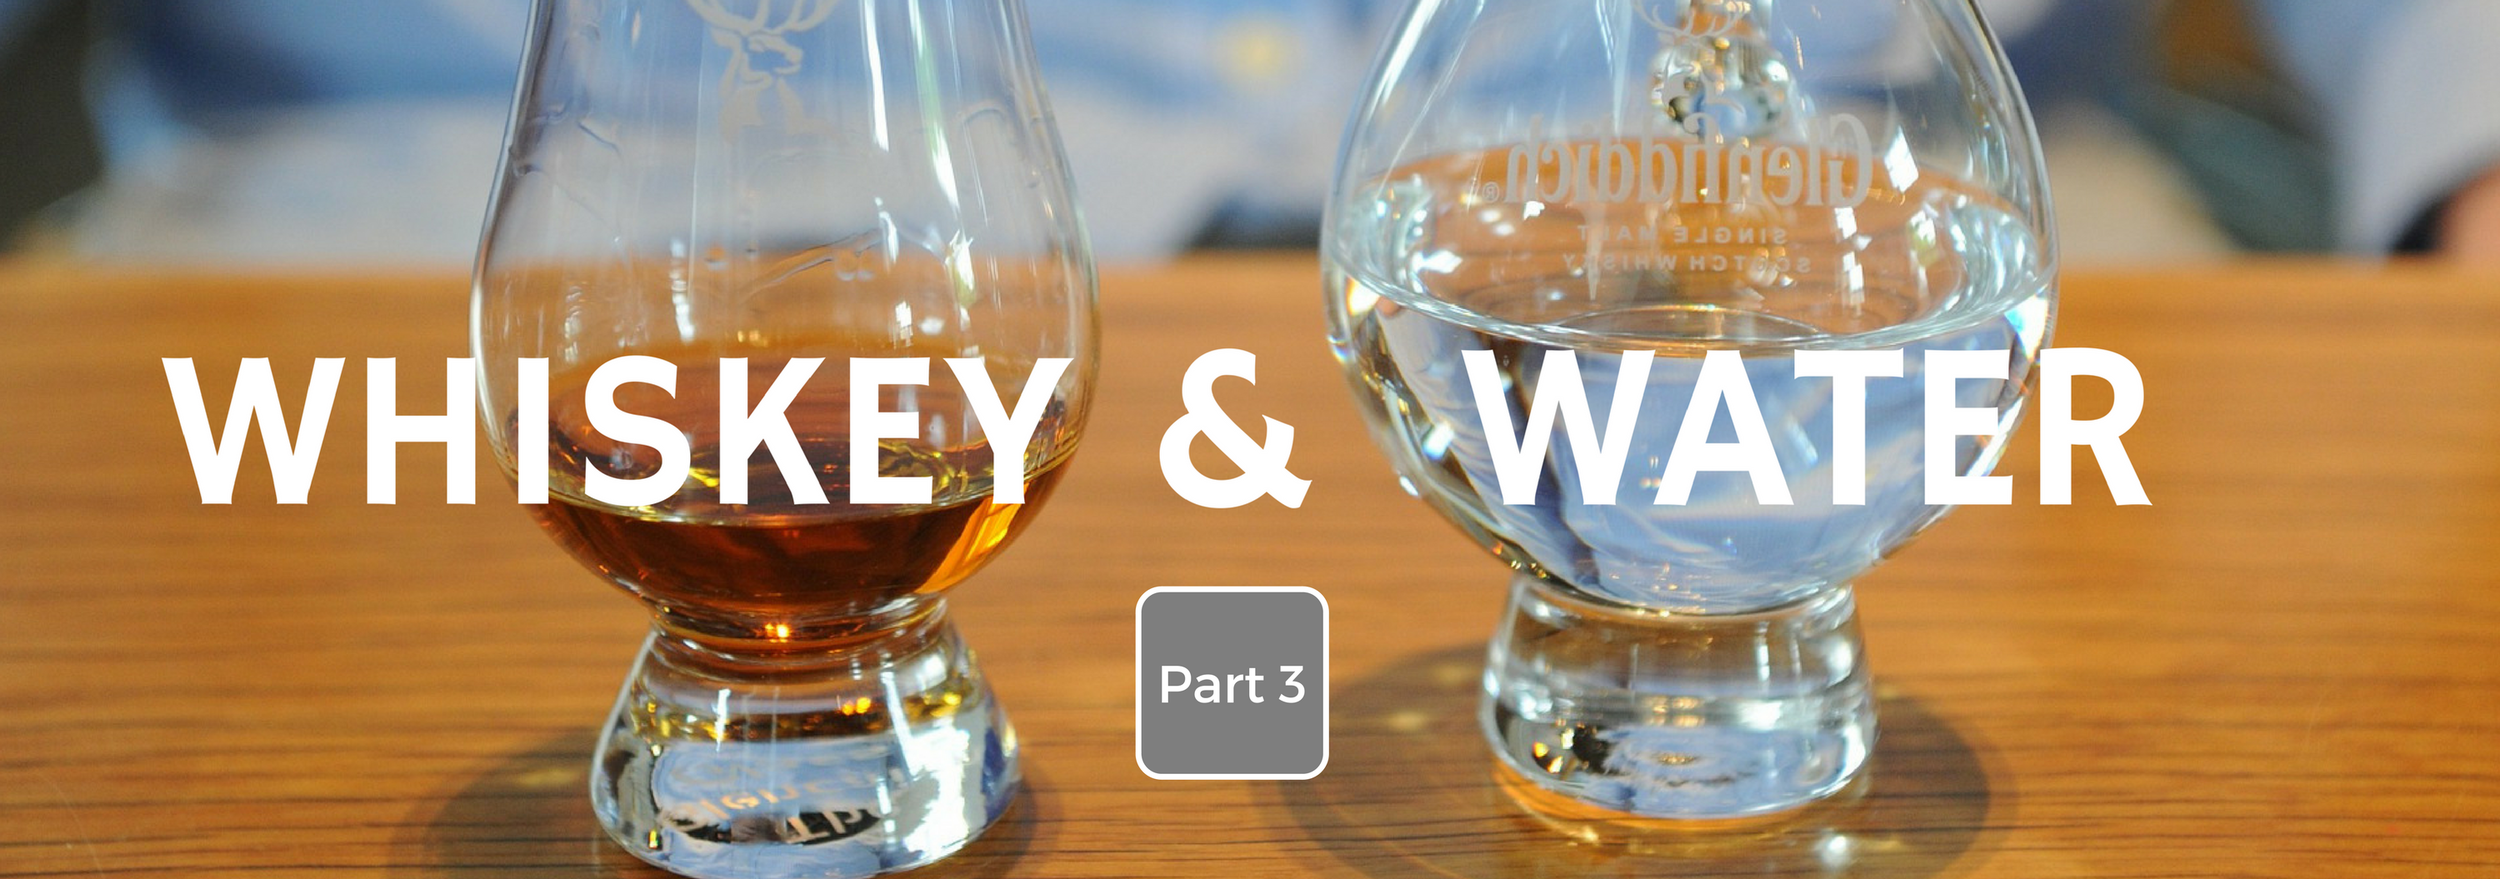 whiskey-water-part-3.png